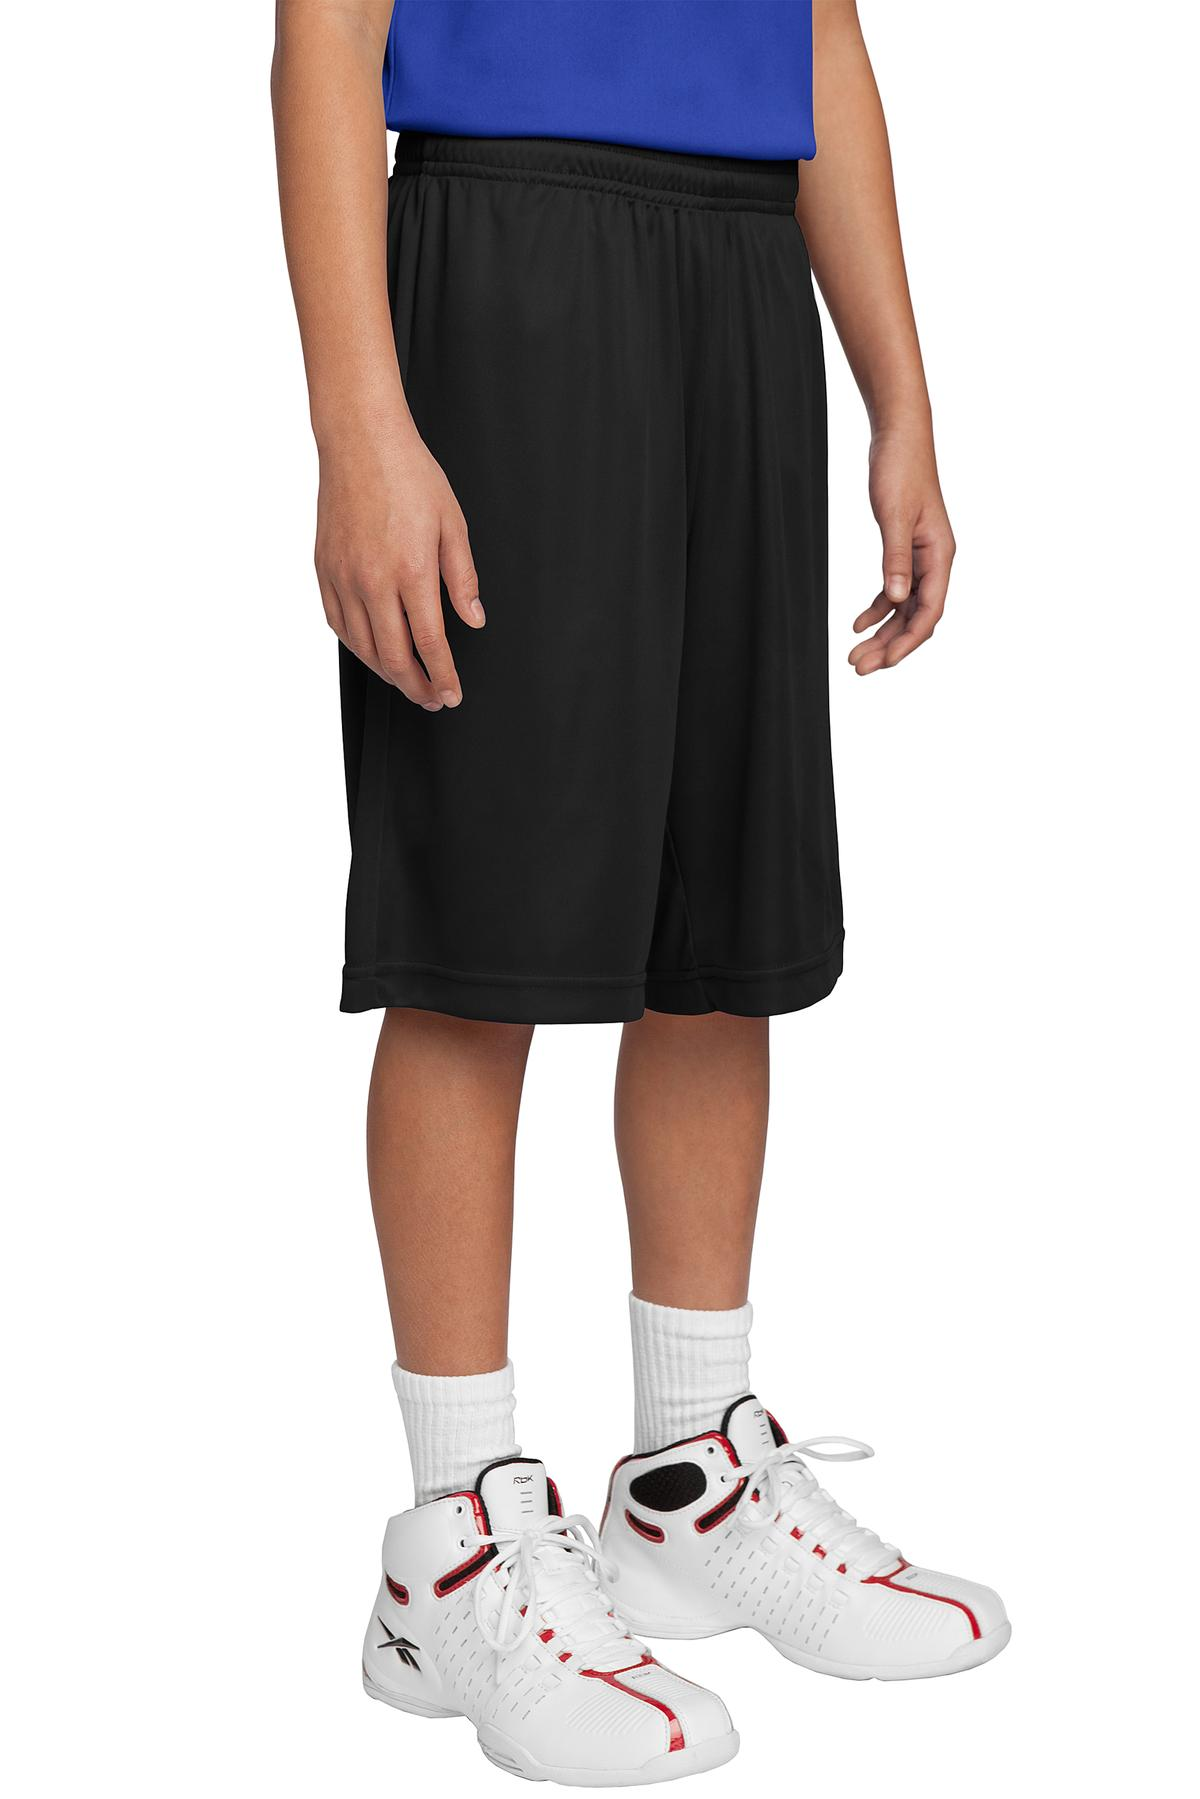 Sport-Tek ®  Youth PosiCharge ®  Competitor™ Short. YST355 - Black